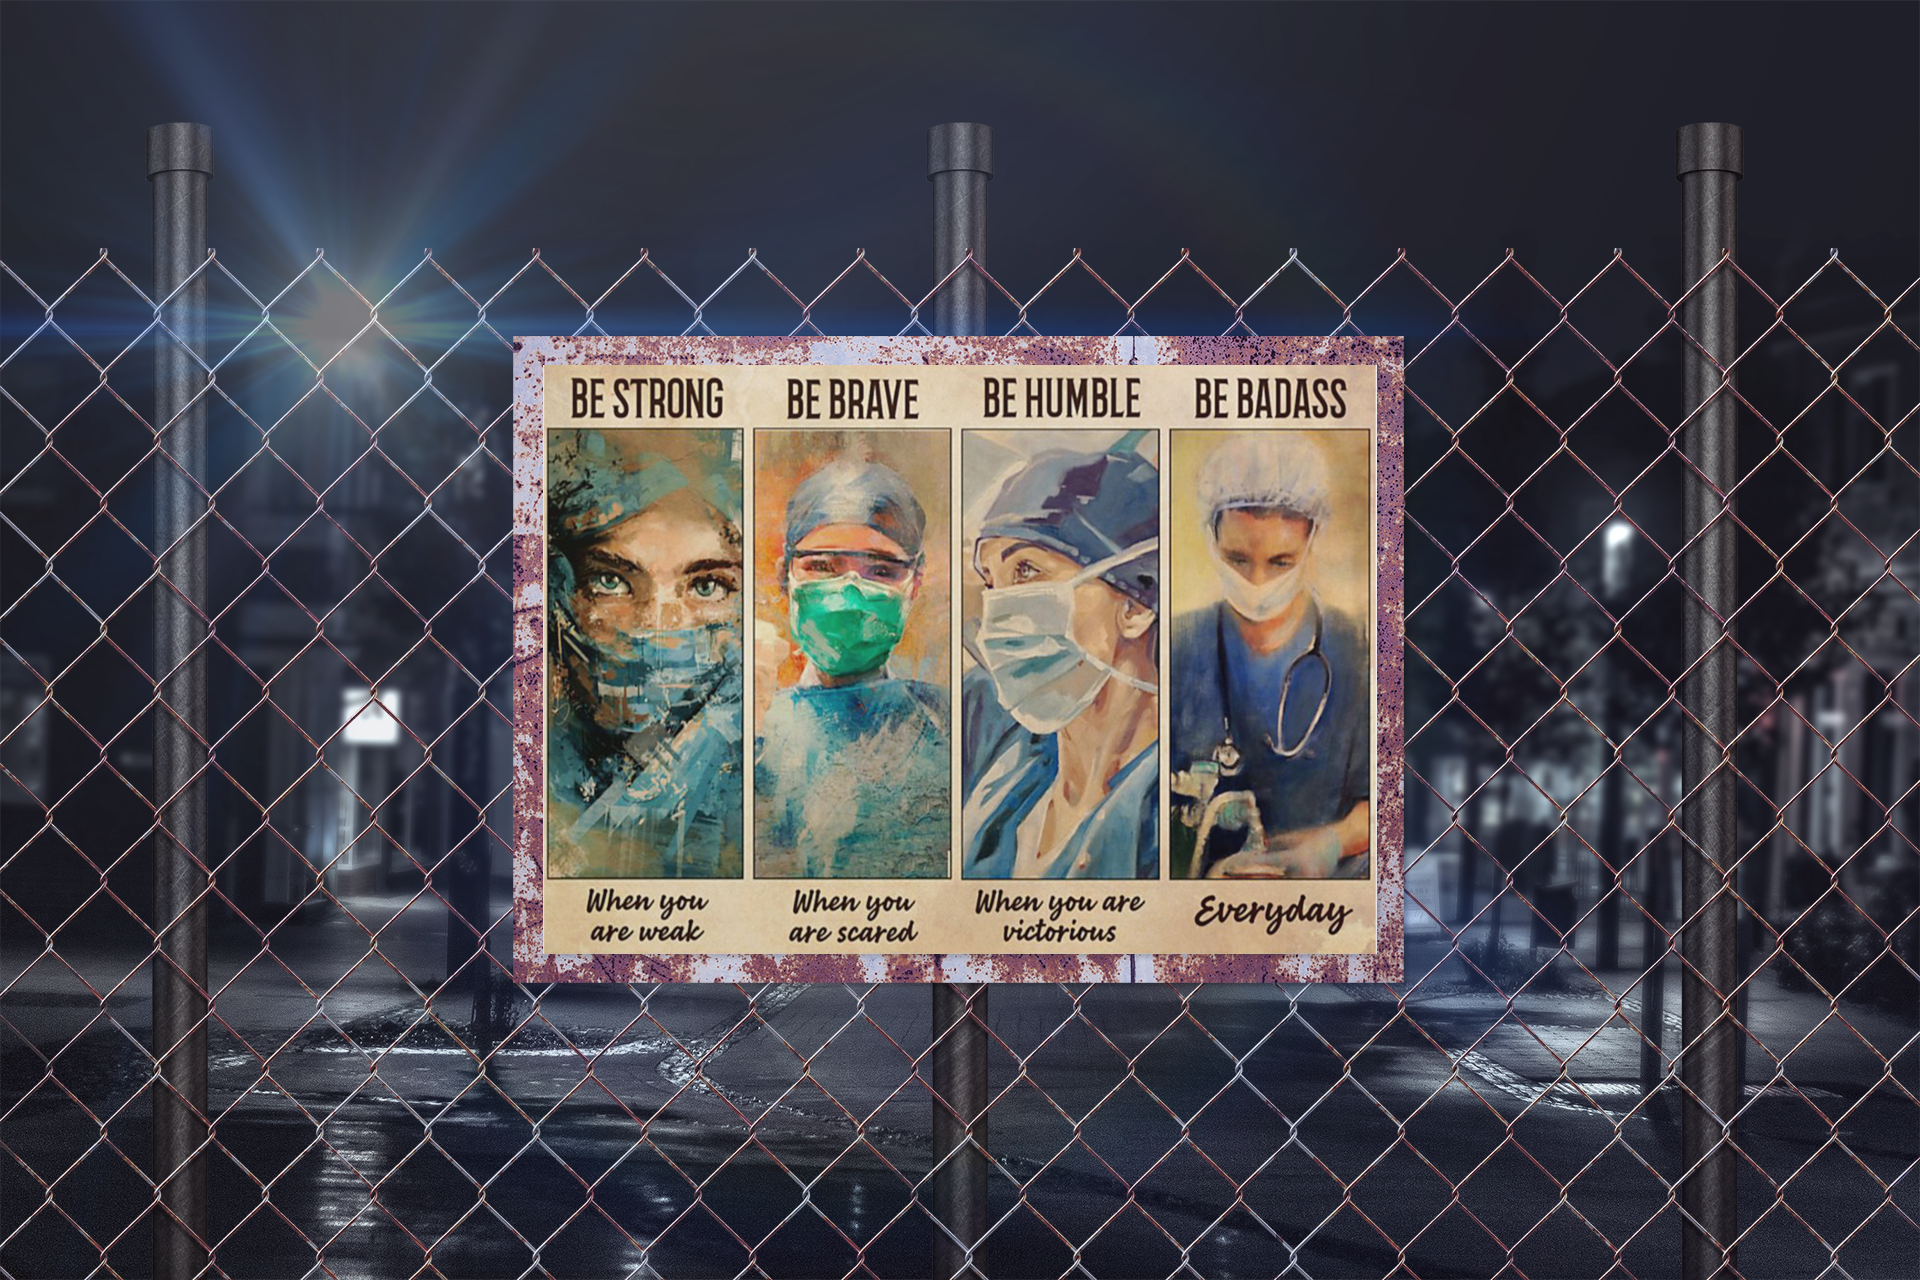 Female Physicians be strong be brave be humble be badass poster10